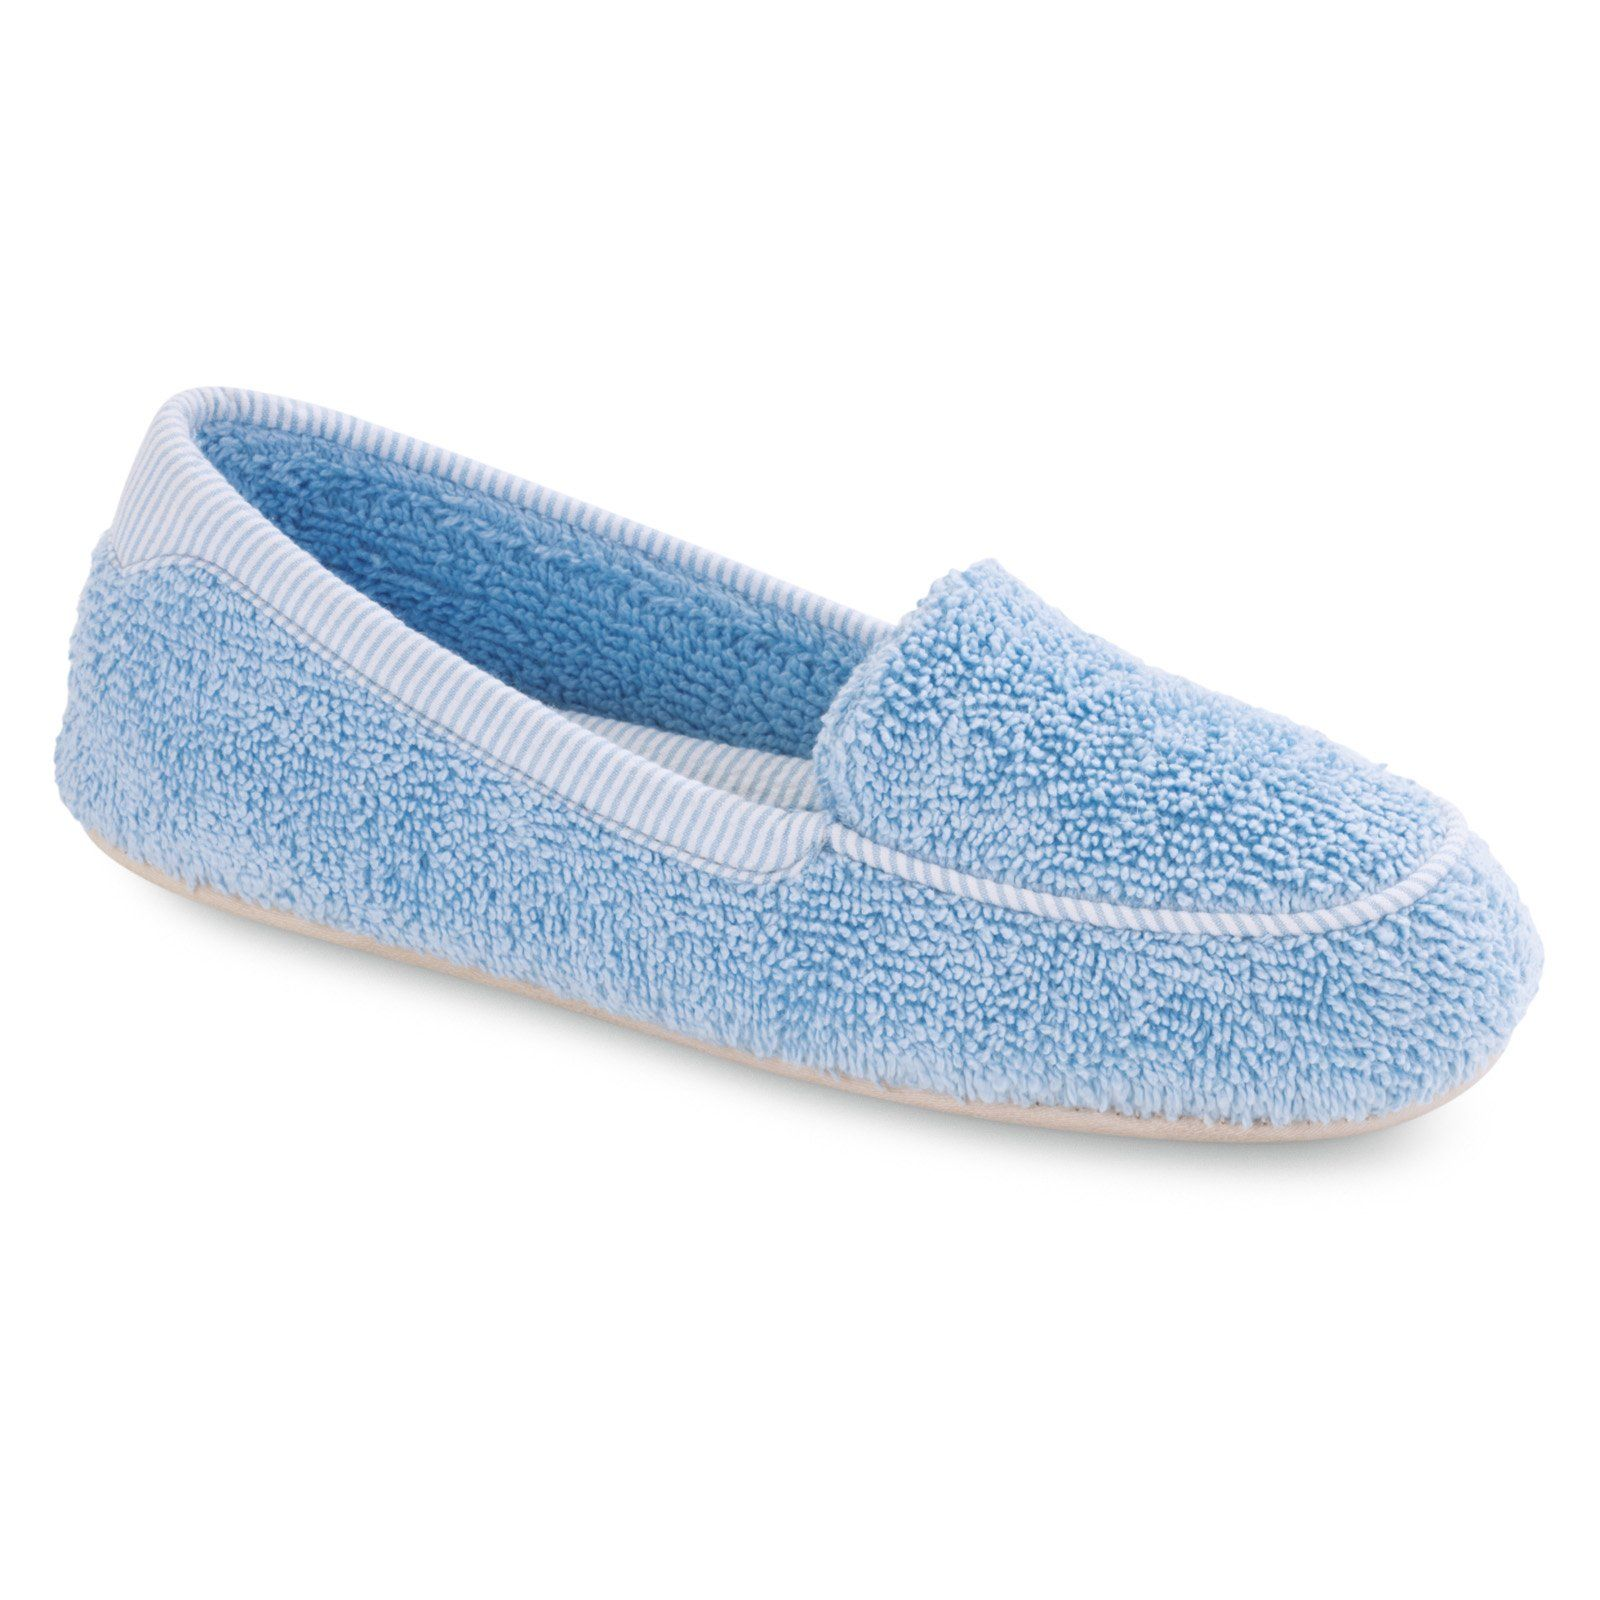 House Have To It Acorn Womens Cotton Terry Moc Slippers Cloud Blue 36 99